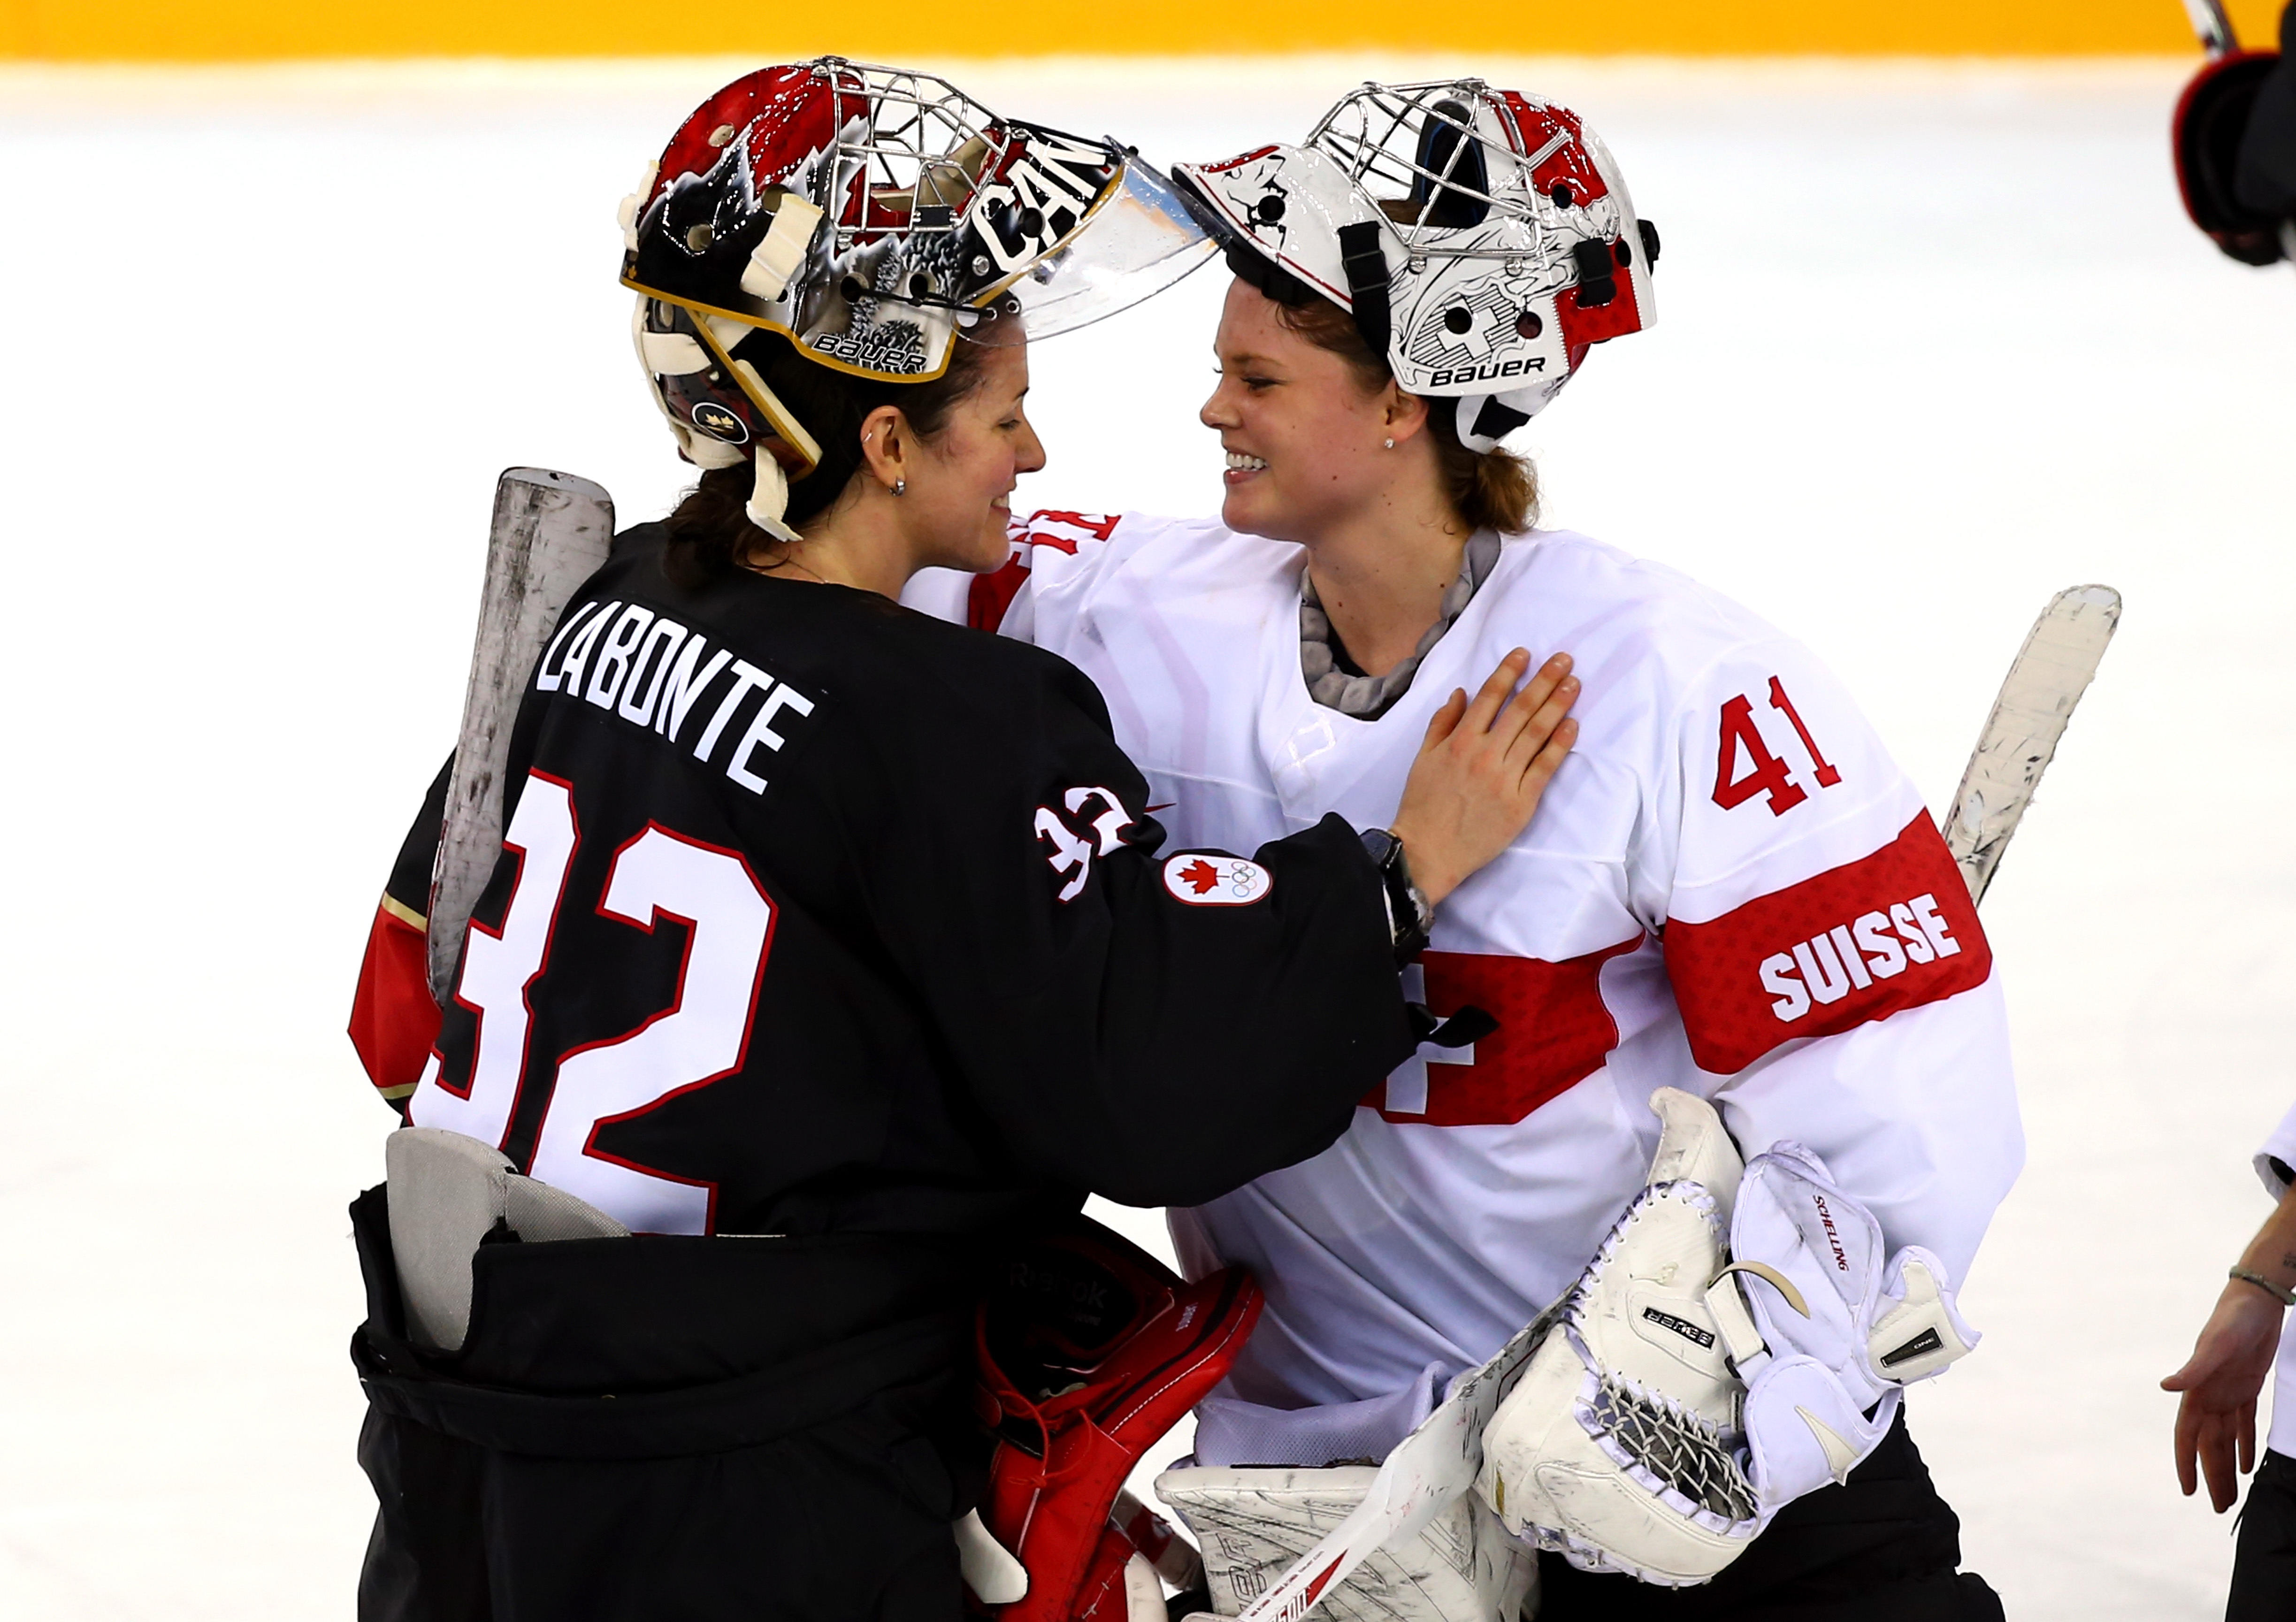 Charline Labonte (Montréal Stars) and Florence Schelling (Brampton Thunder) talk after Canada's 5-0 victory against Switzerland at Sochi